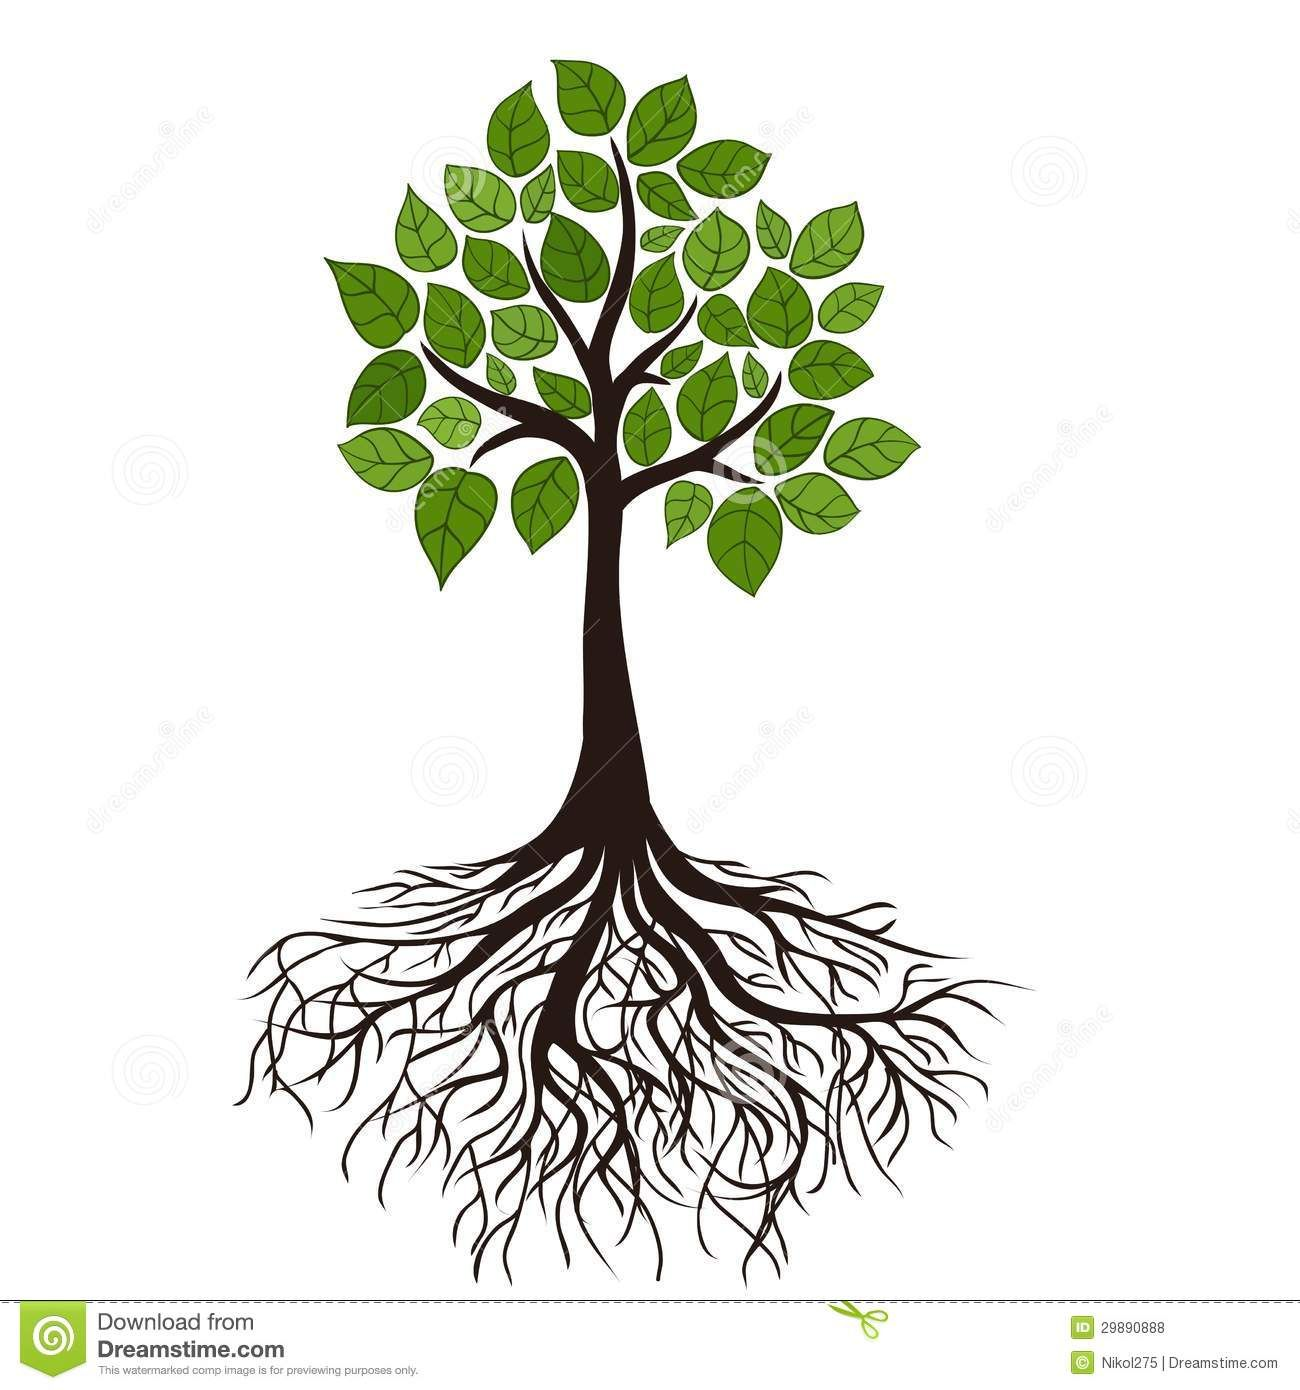 Tree with Roots and Branches | Tree with roots and dense foliage ...